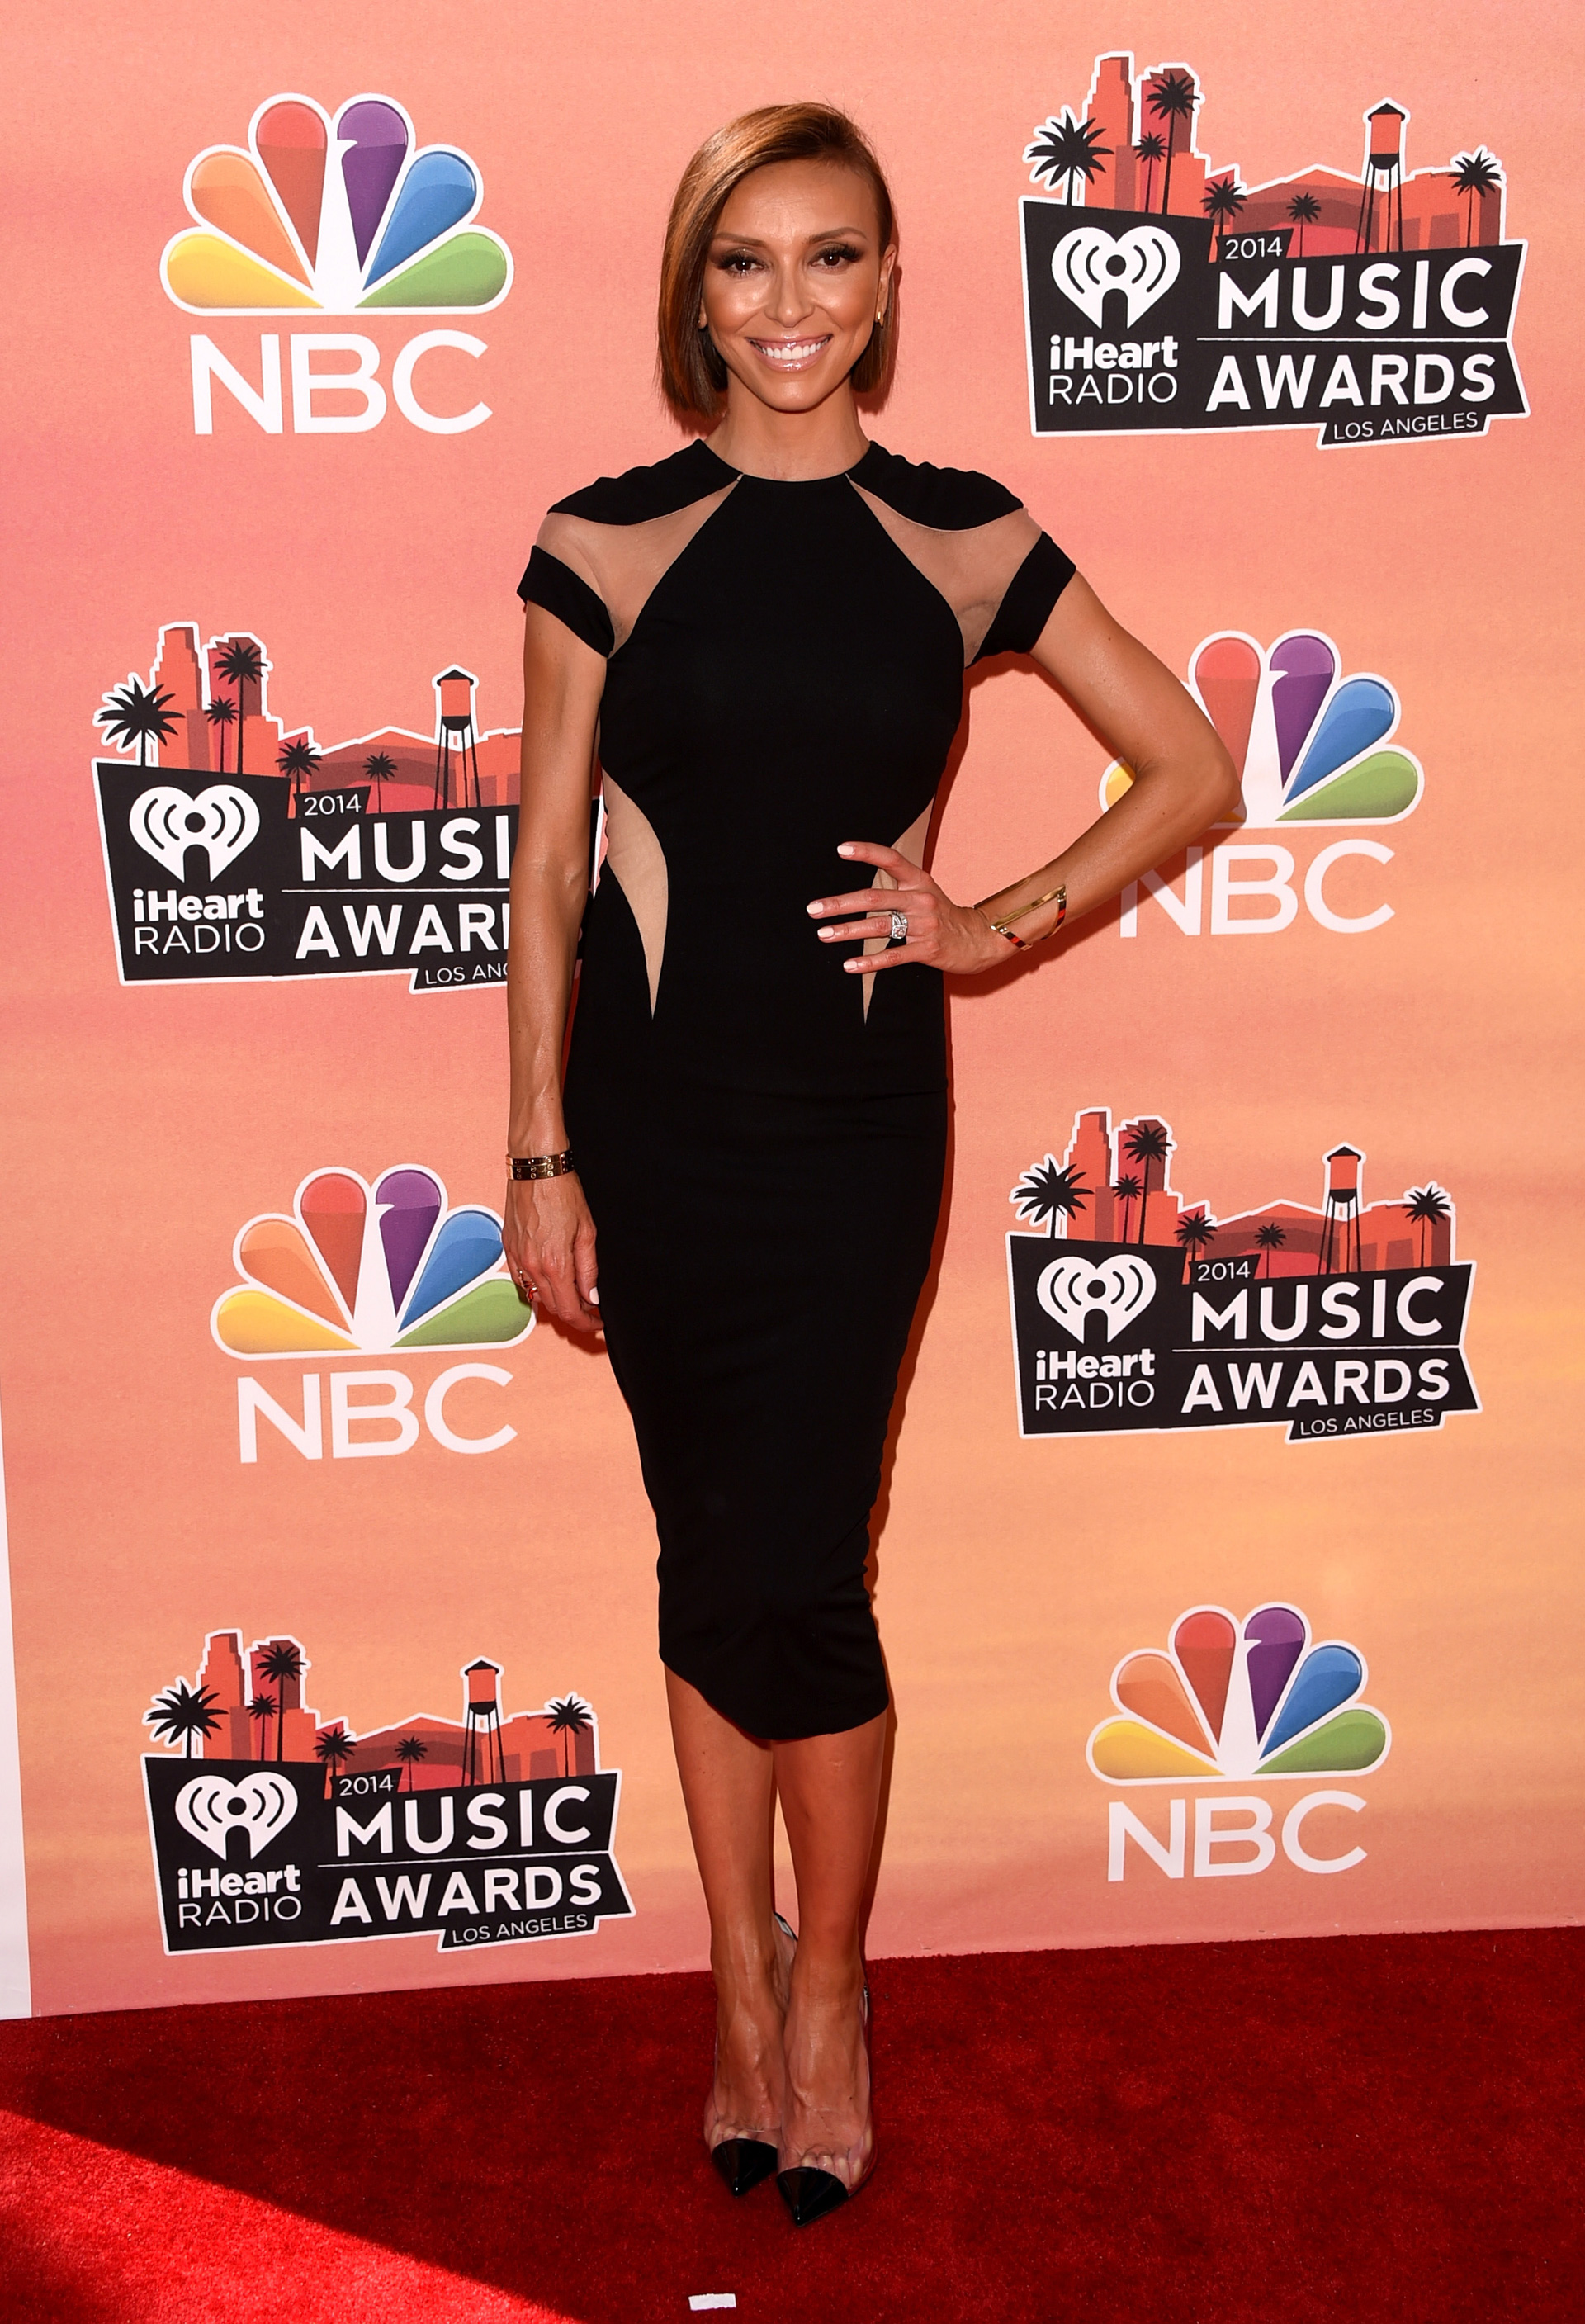 Giuliana Rancic at the 2014 iHeartRadio Music Awards